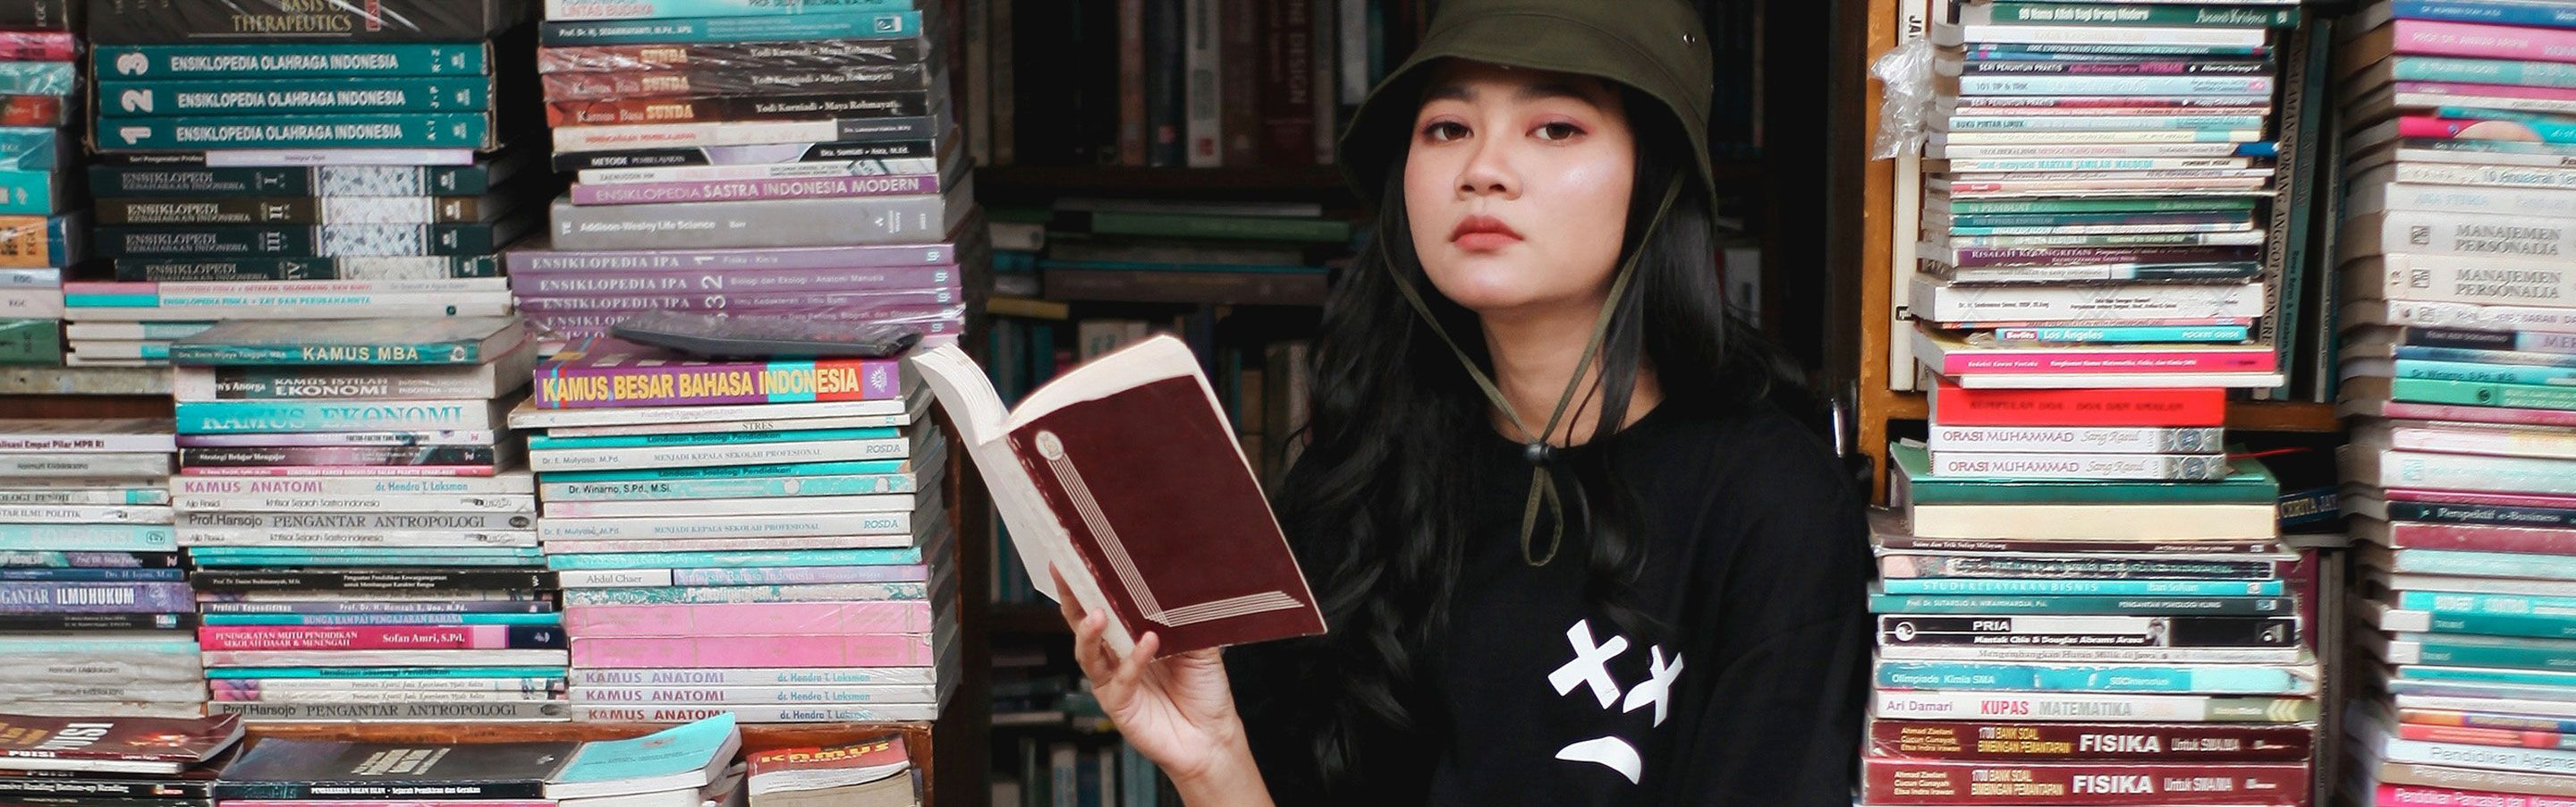 Freelancing sitting on books that she read and help her with her freelance business